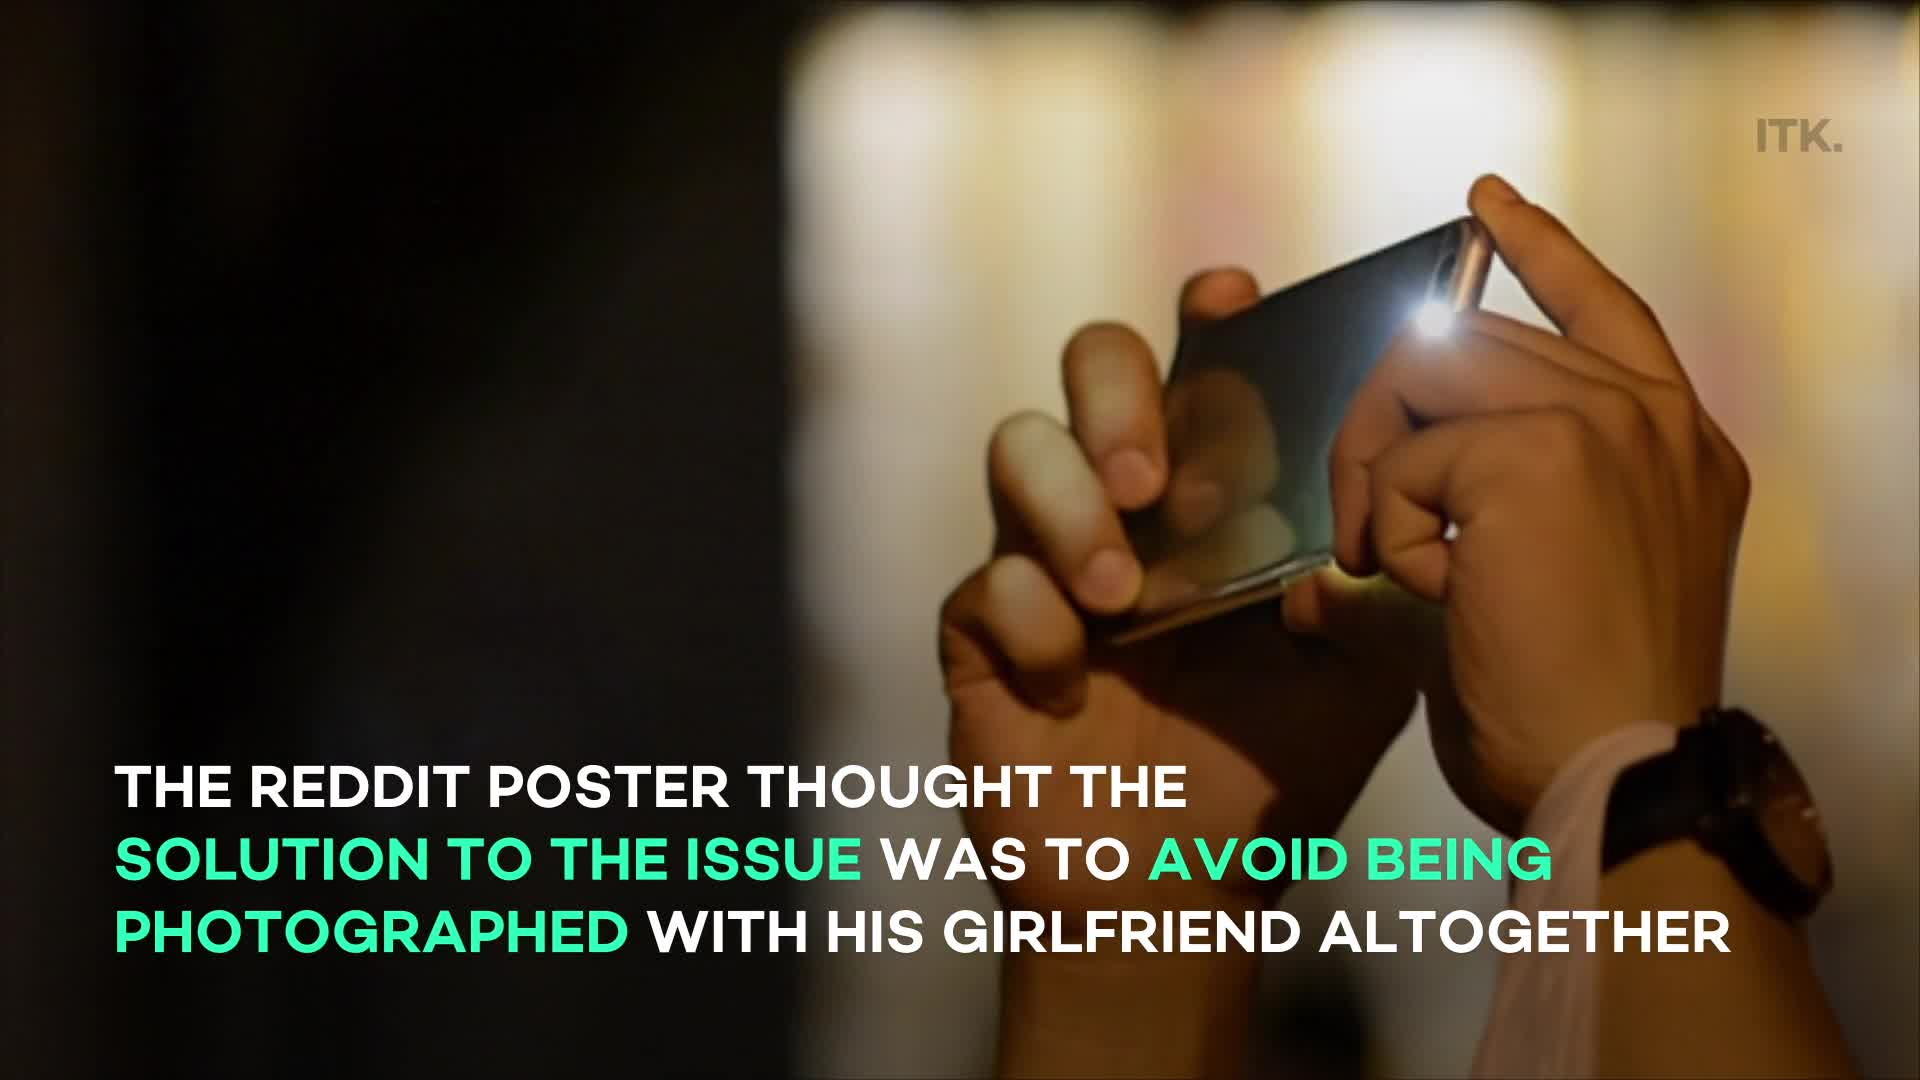 www.yahoo.com: Man stirs controversy with reason for 'refusing' to take photos with his girlfriend